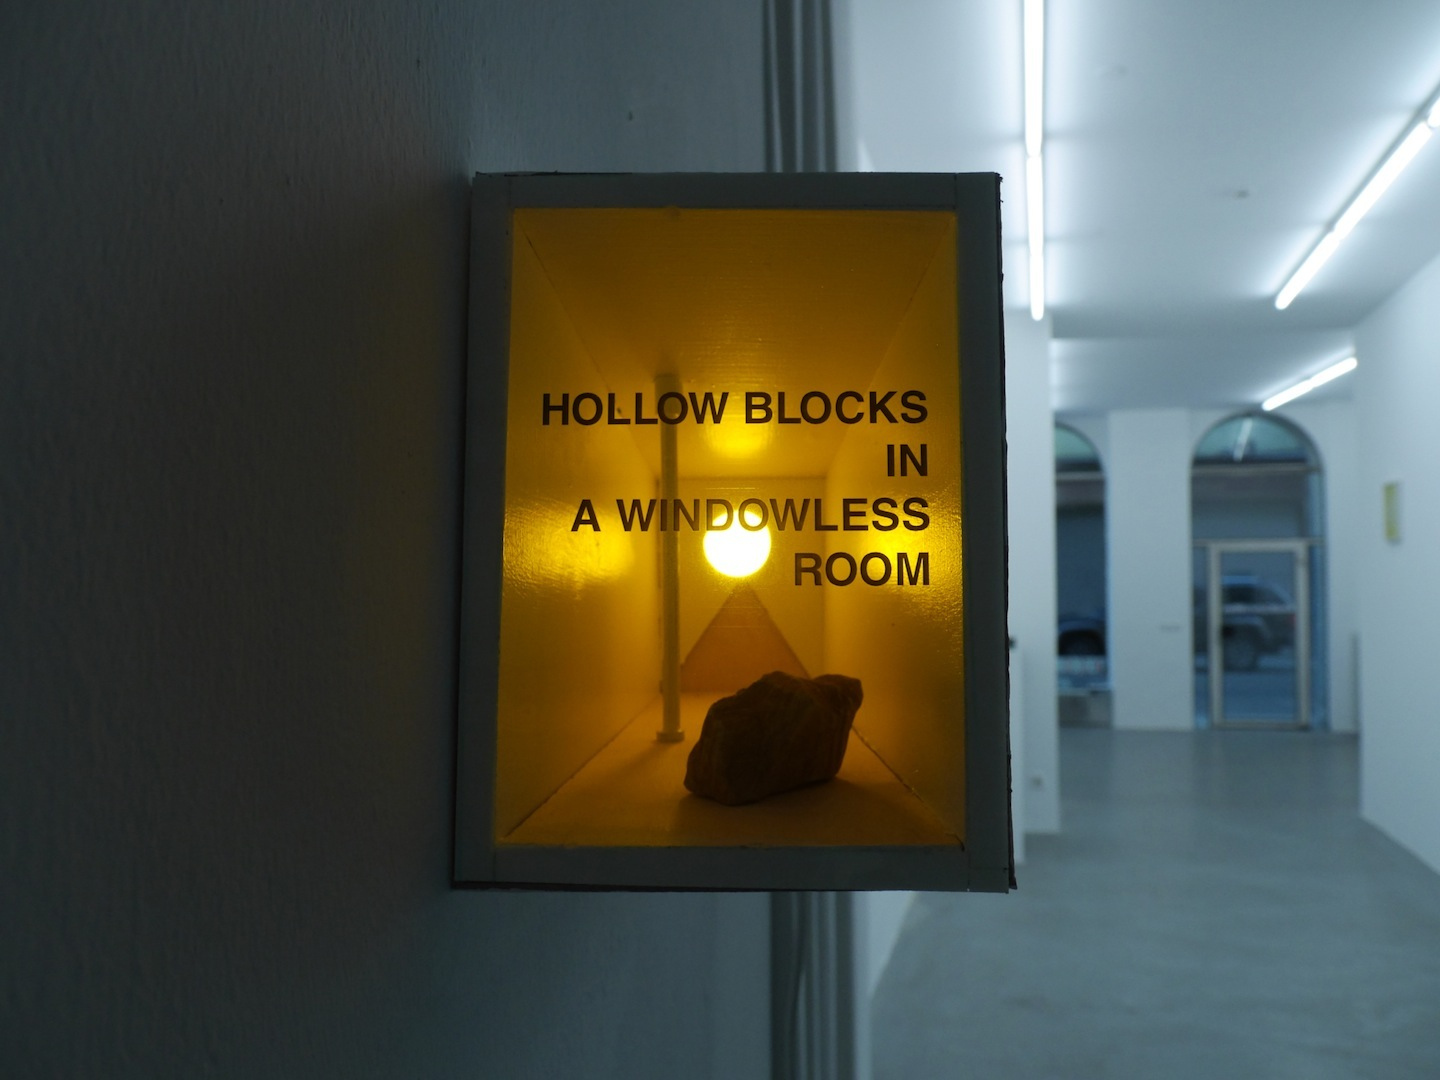 Lukasz Jastrubczak,  Reconstruction of the Photograph and the Sentence,  2015. Modell, Licht, Stein, 50 x 23 x 80 cm. Courtesy: David Radziszewski Galeria. Installationsansicht Knoll Galerie Wien, 2015.